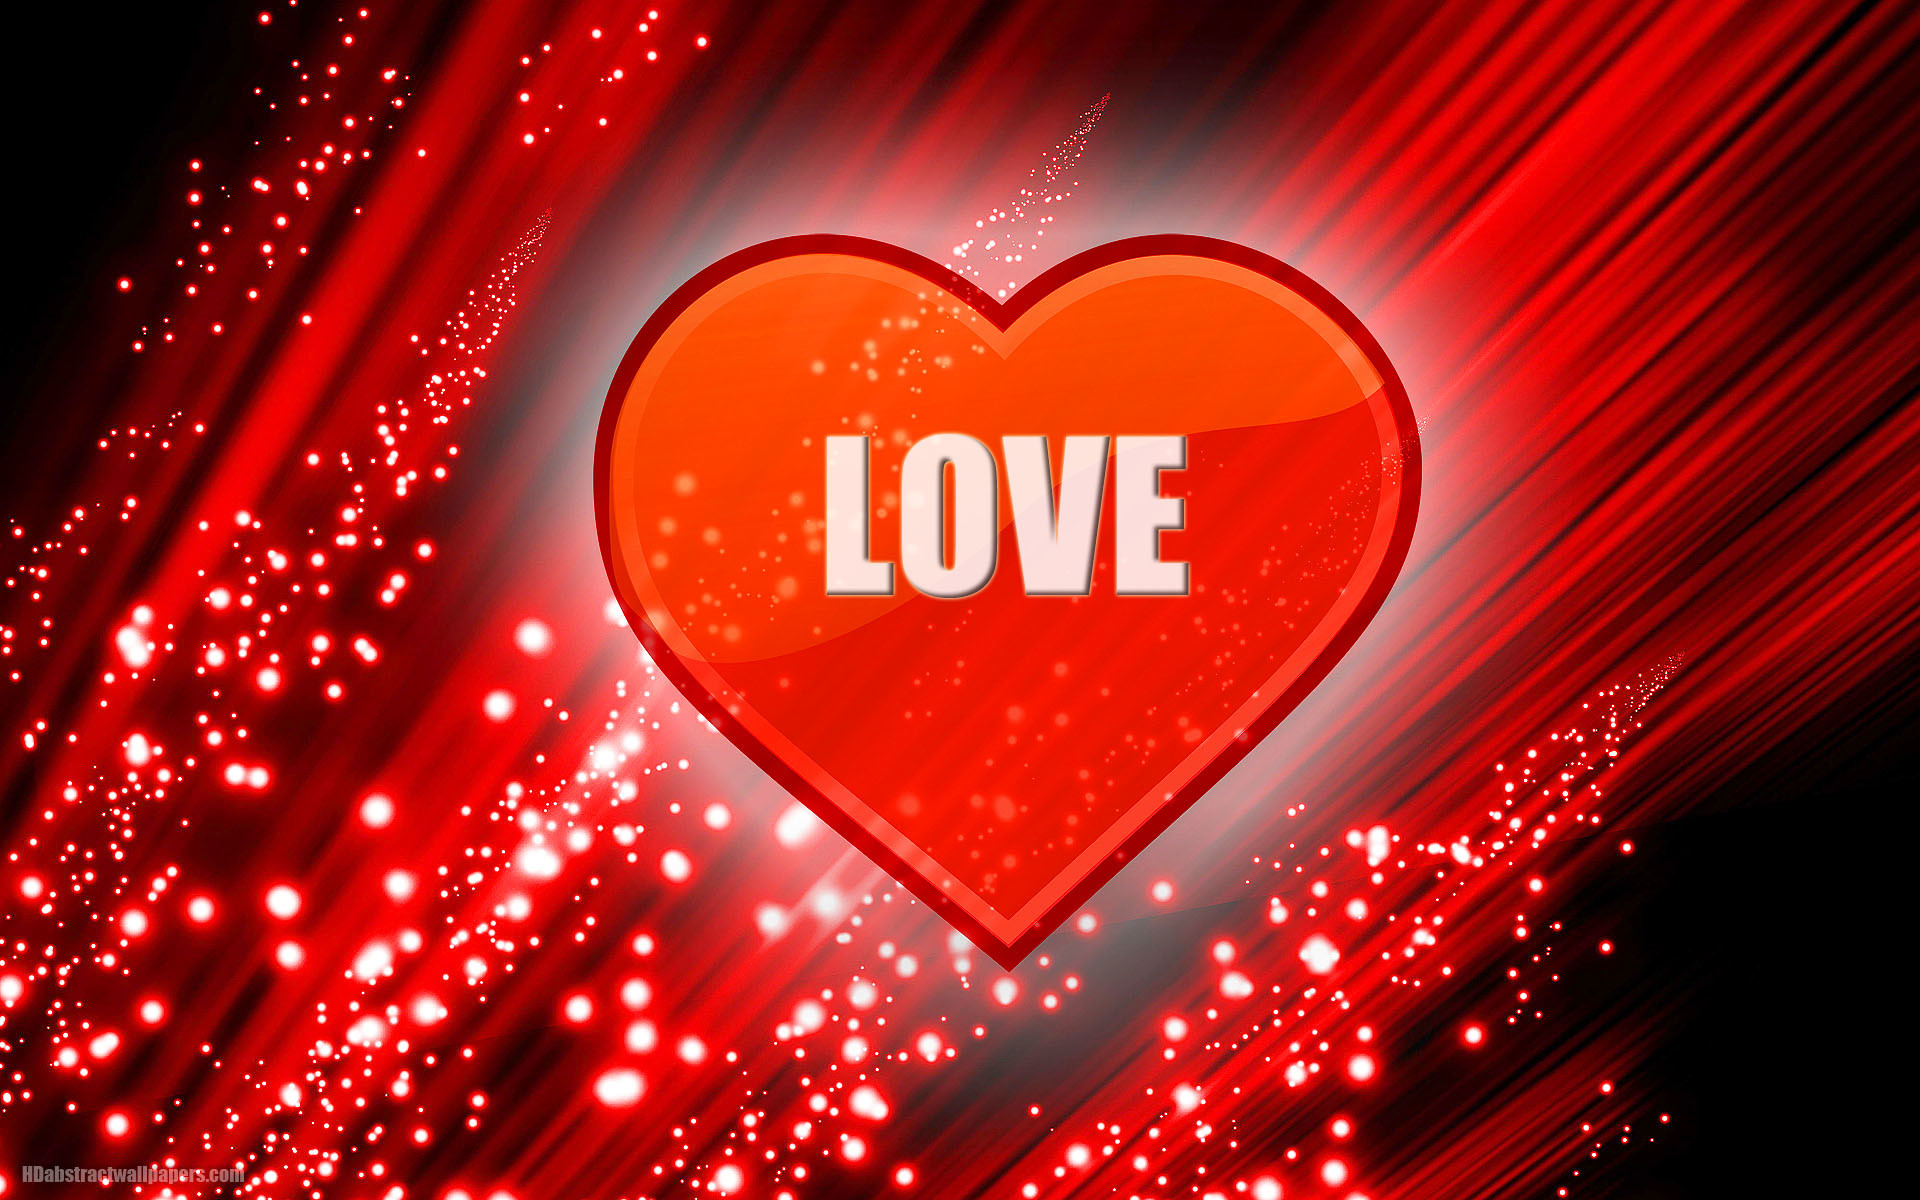 Red abstract wallpaper with big heart and text love